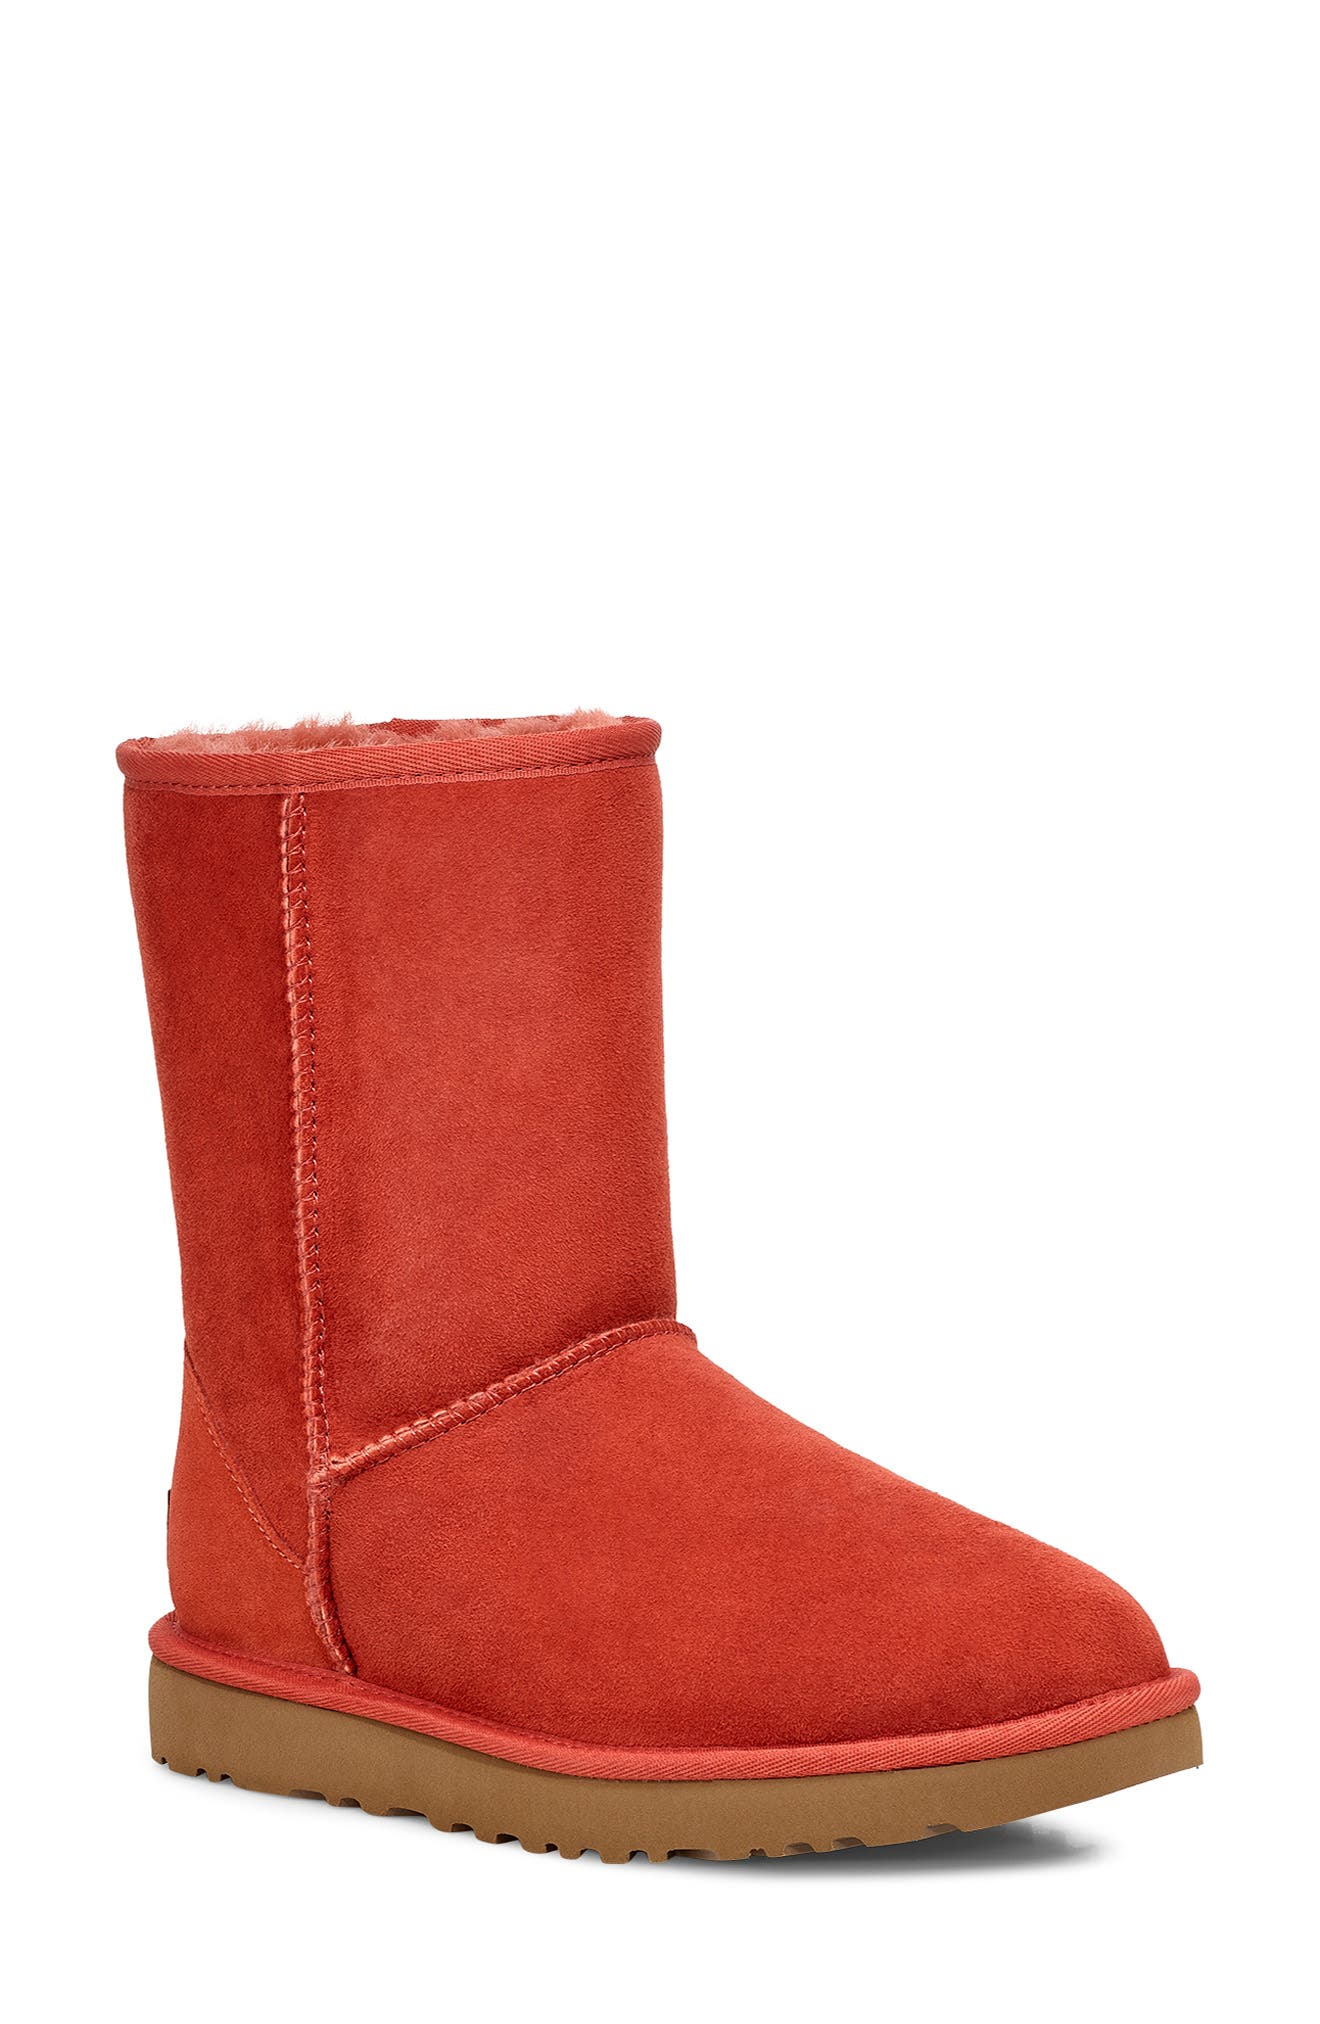 ugg boots new collection 2018